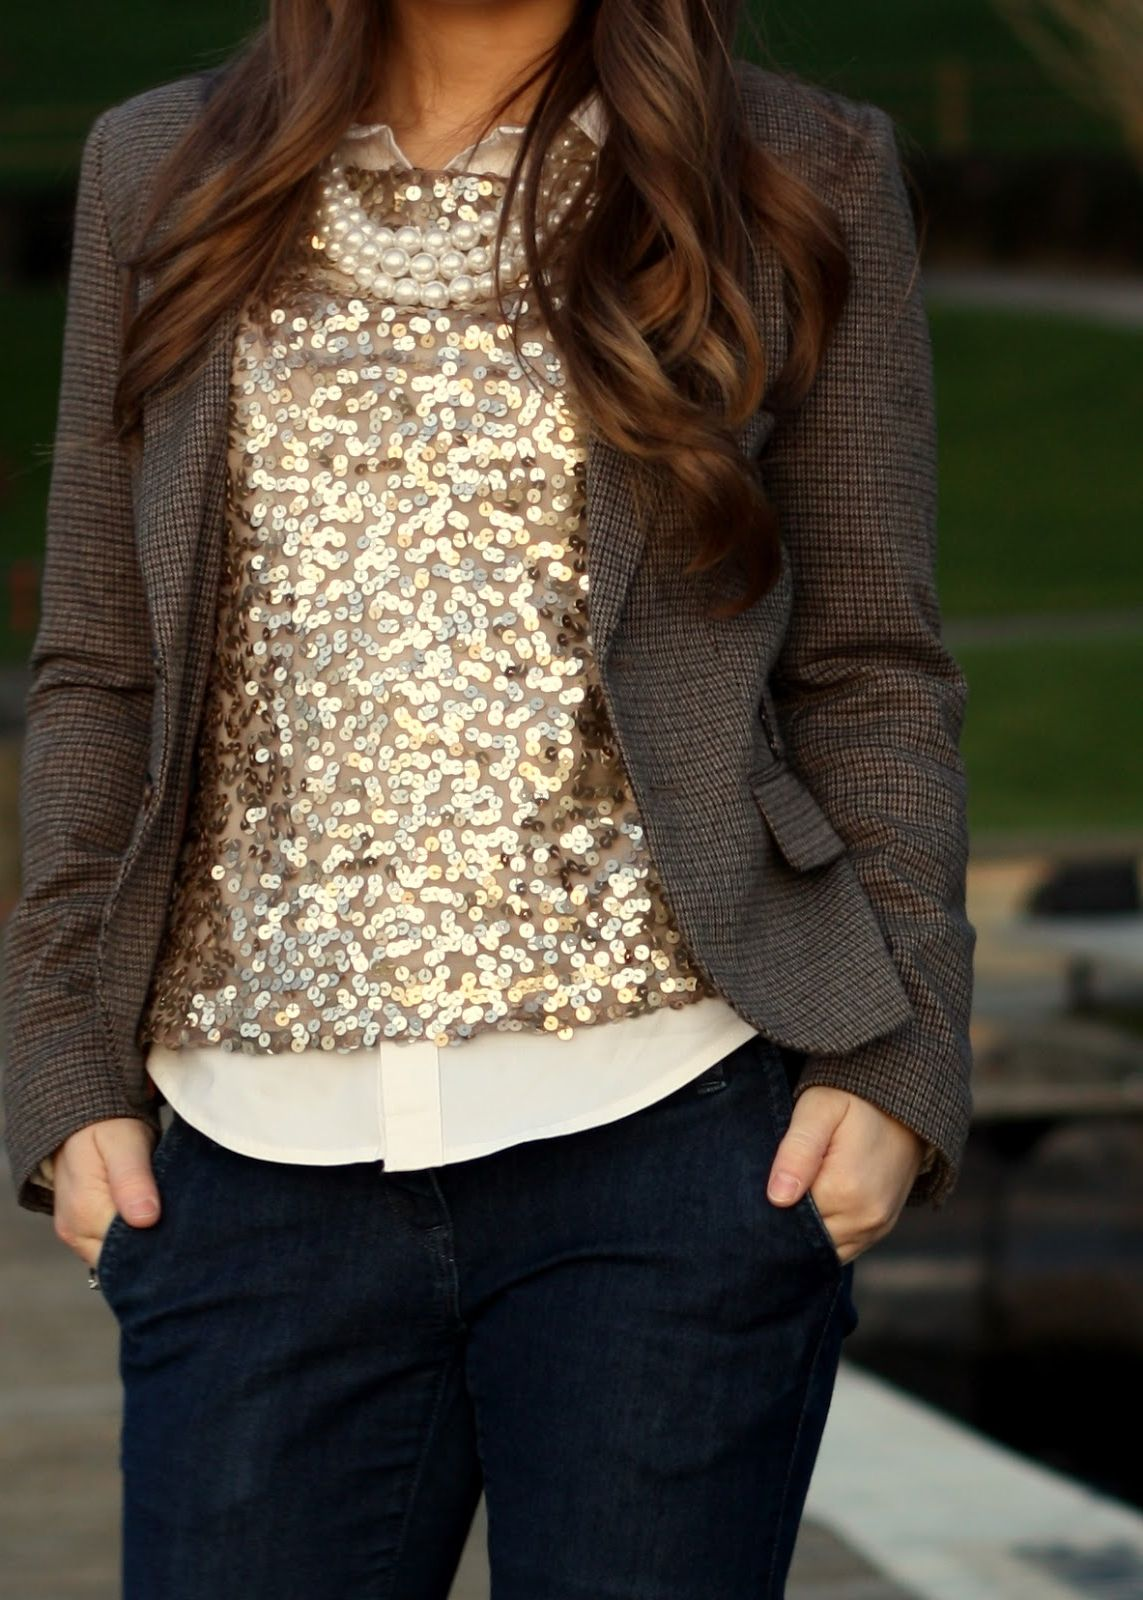 How To Wear Sparkly Shirt